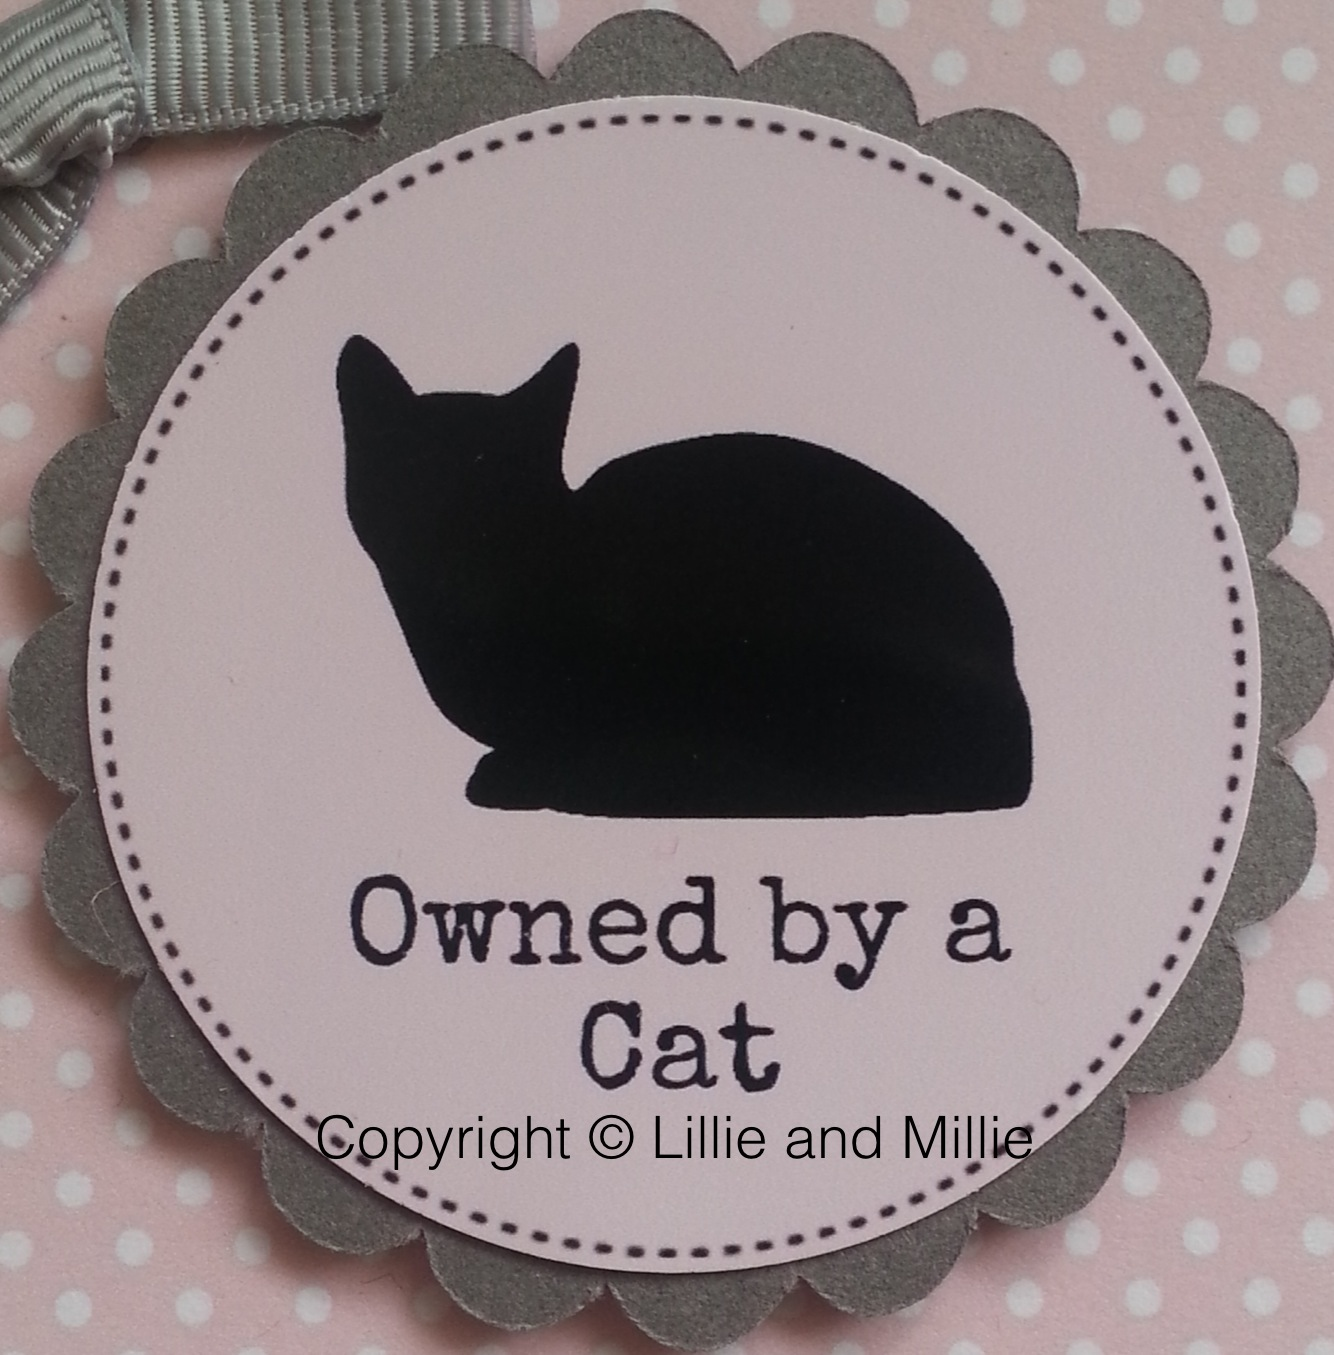 Owned by a Cat Card